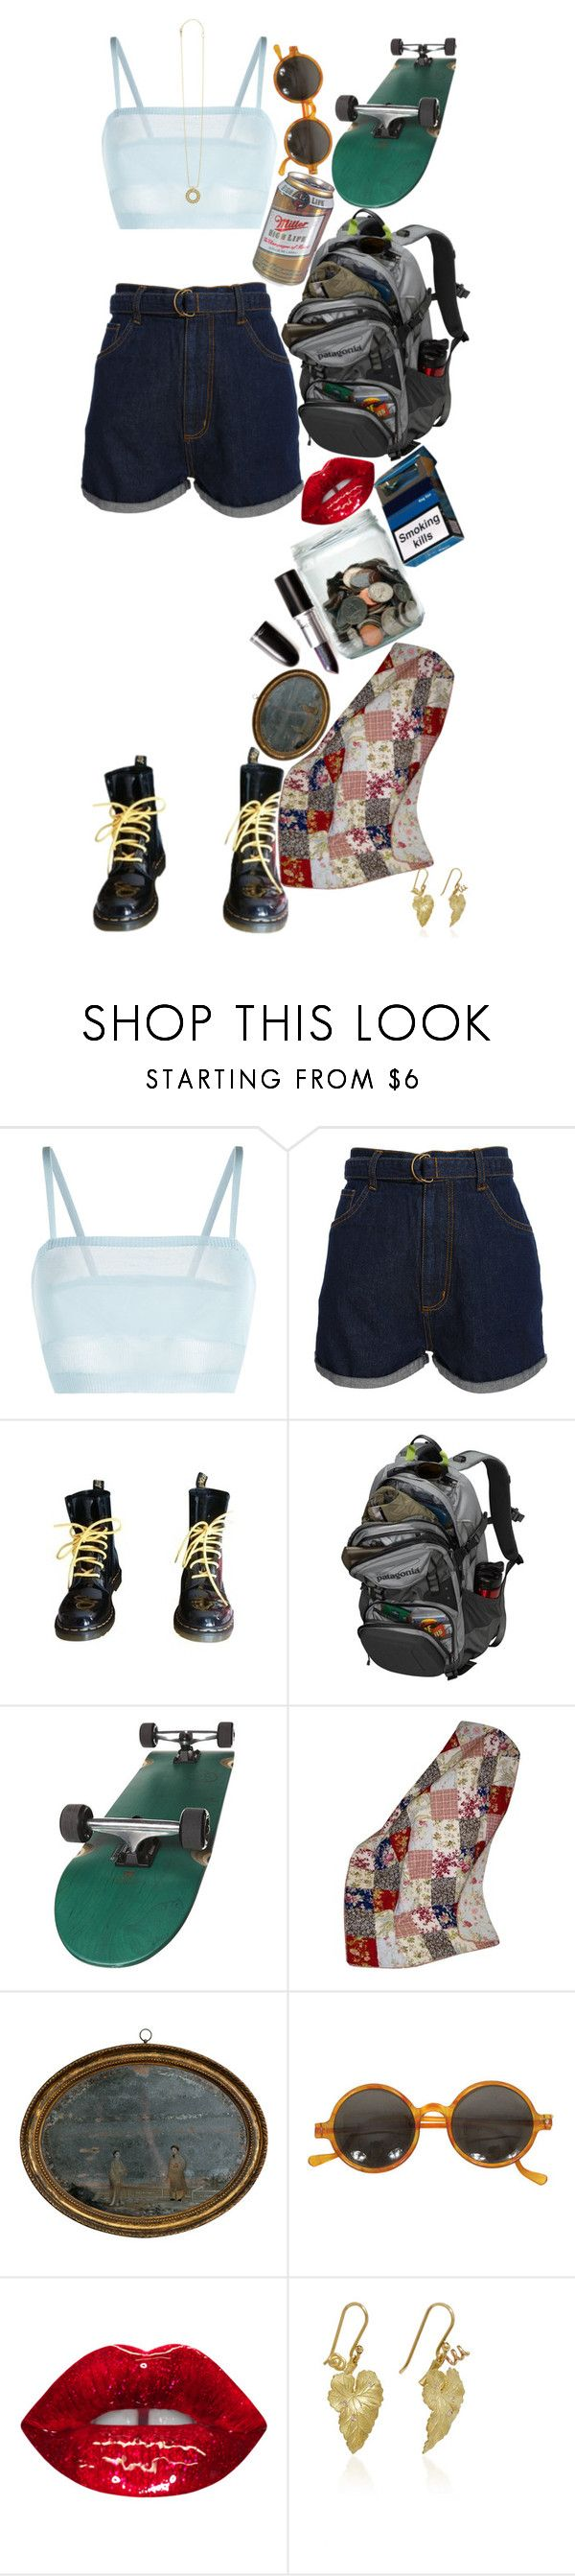 """Sans titre #650"" by lucileking ❤ liked on Polyvore featuring La Perla, Cheap Monday, Dr. Martens, Patagonia, Greenland Home and Lagos"